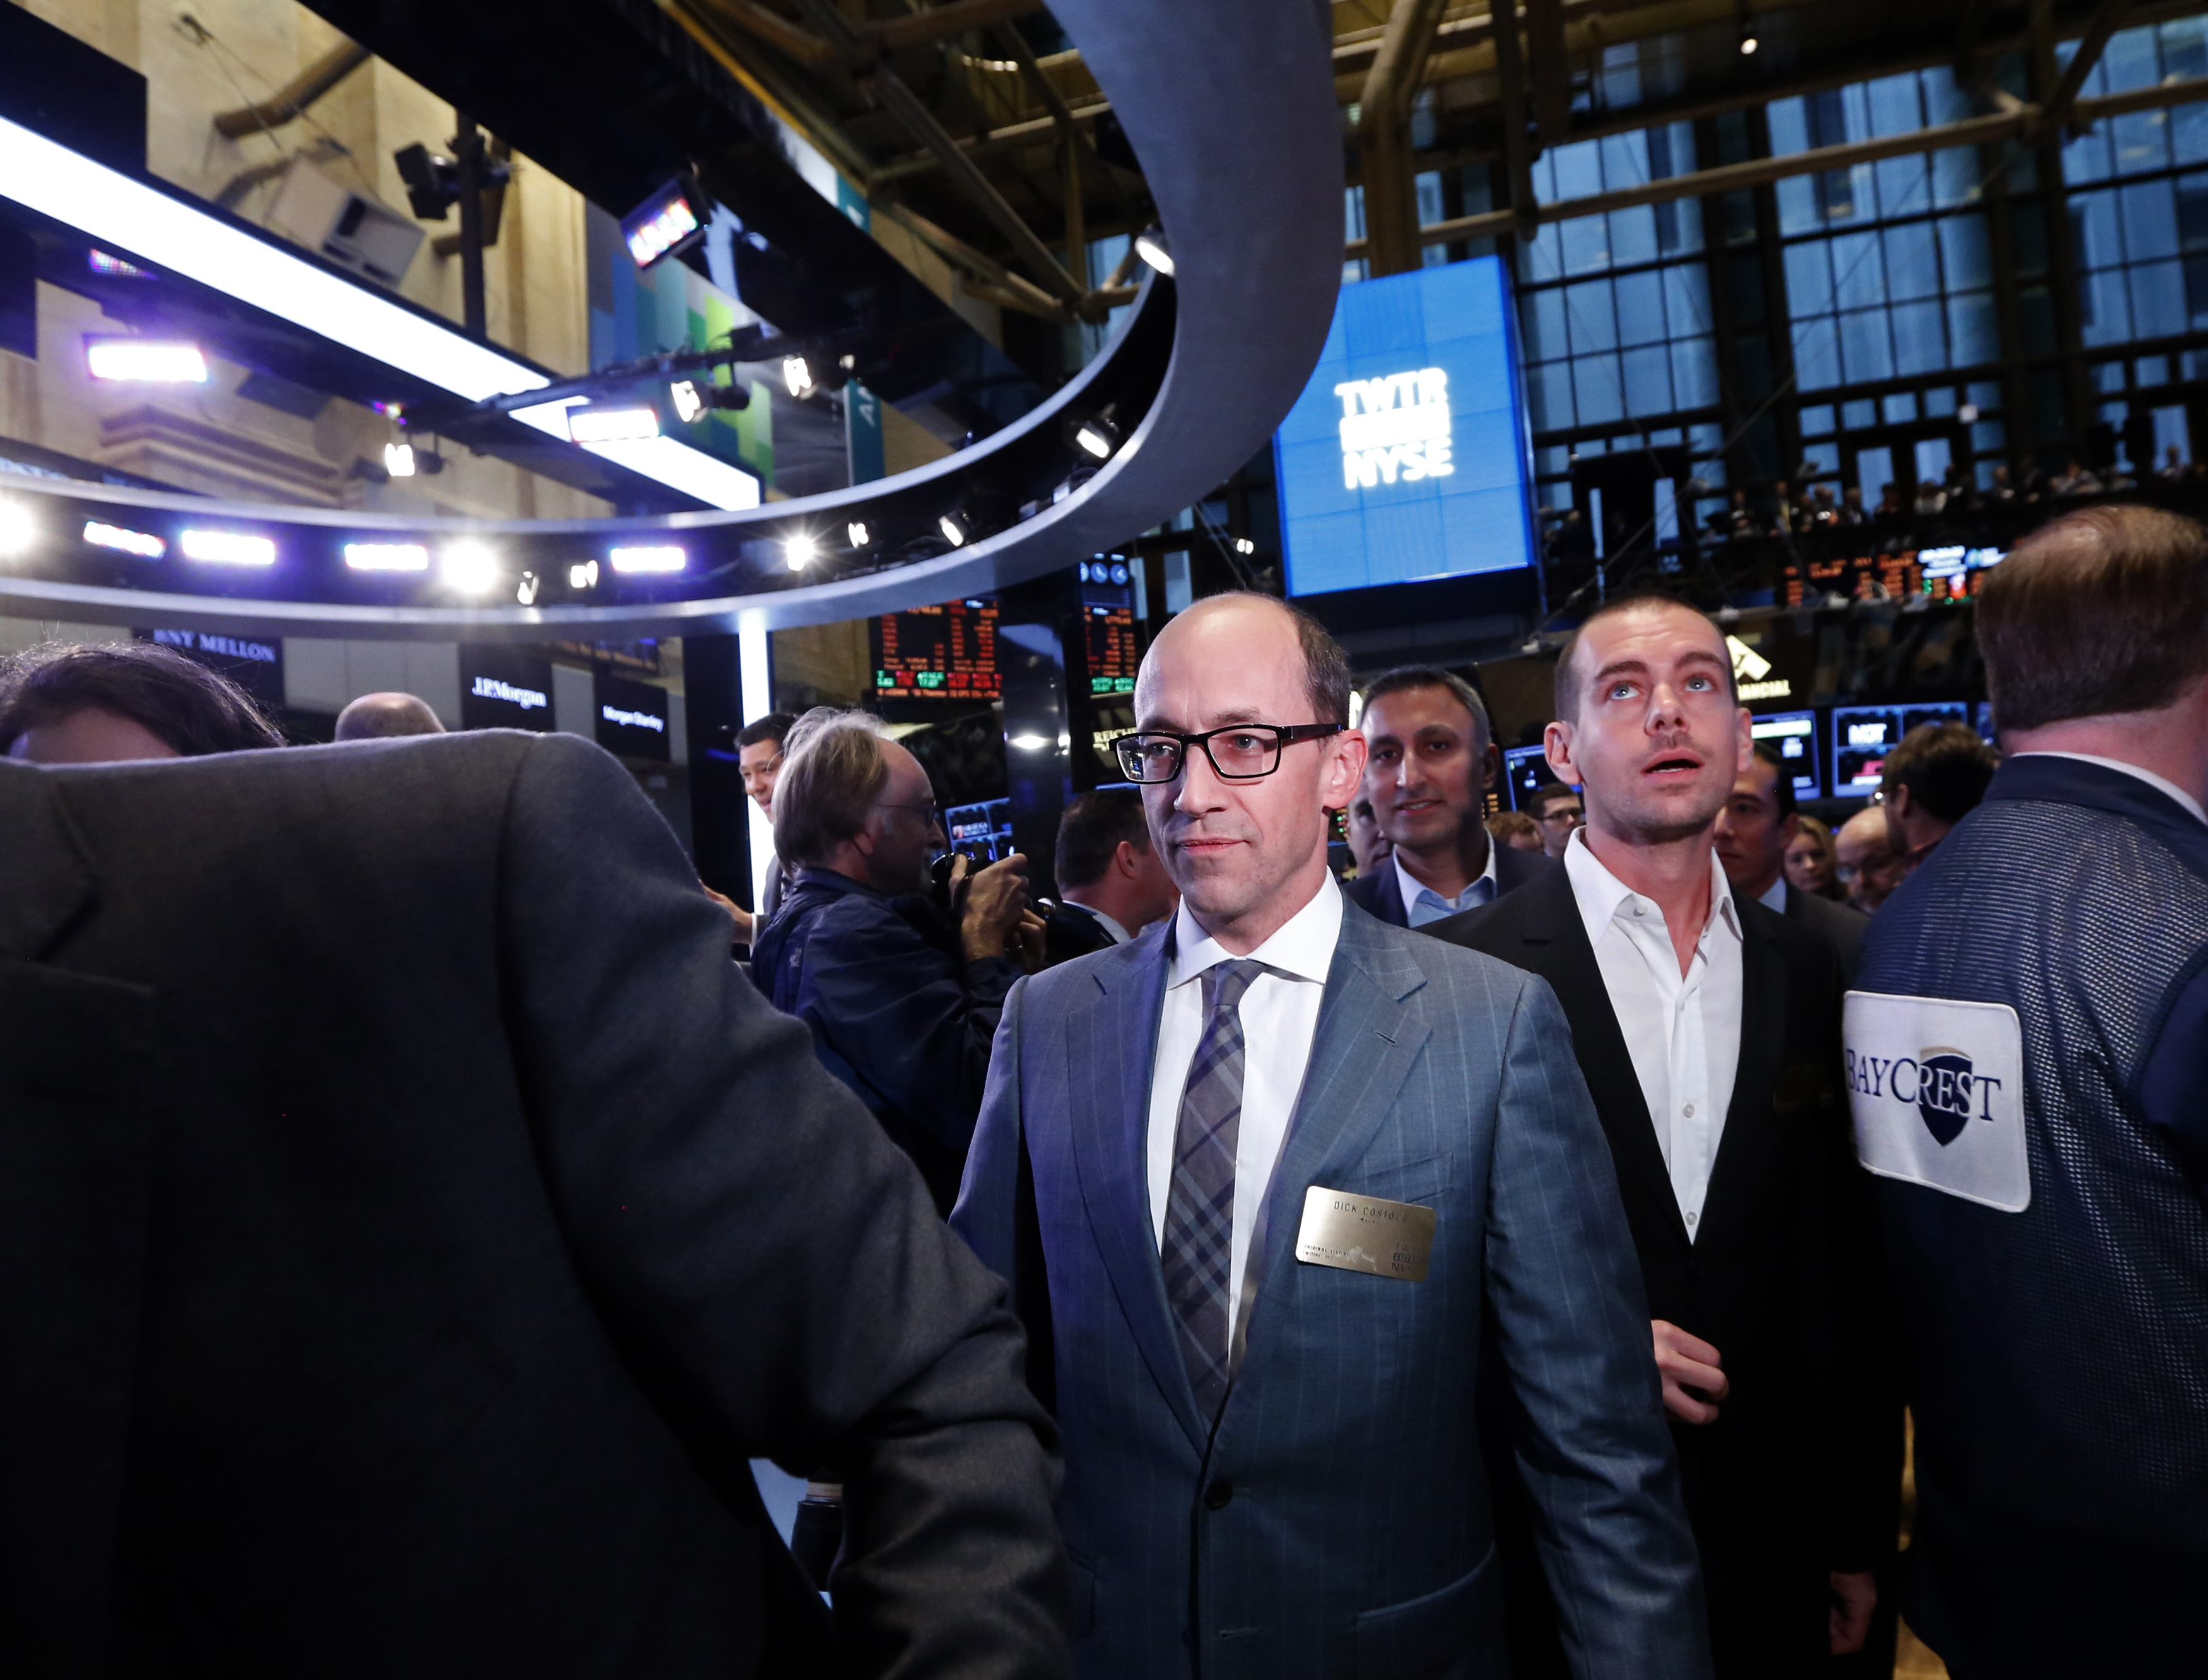 Twitter CEO Costolo and Twitter co-founder Dorsey walk the floor of the New York Stock Exchange during Twitter's IPO in New York